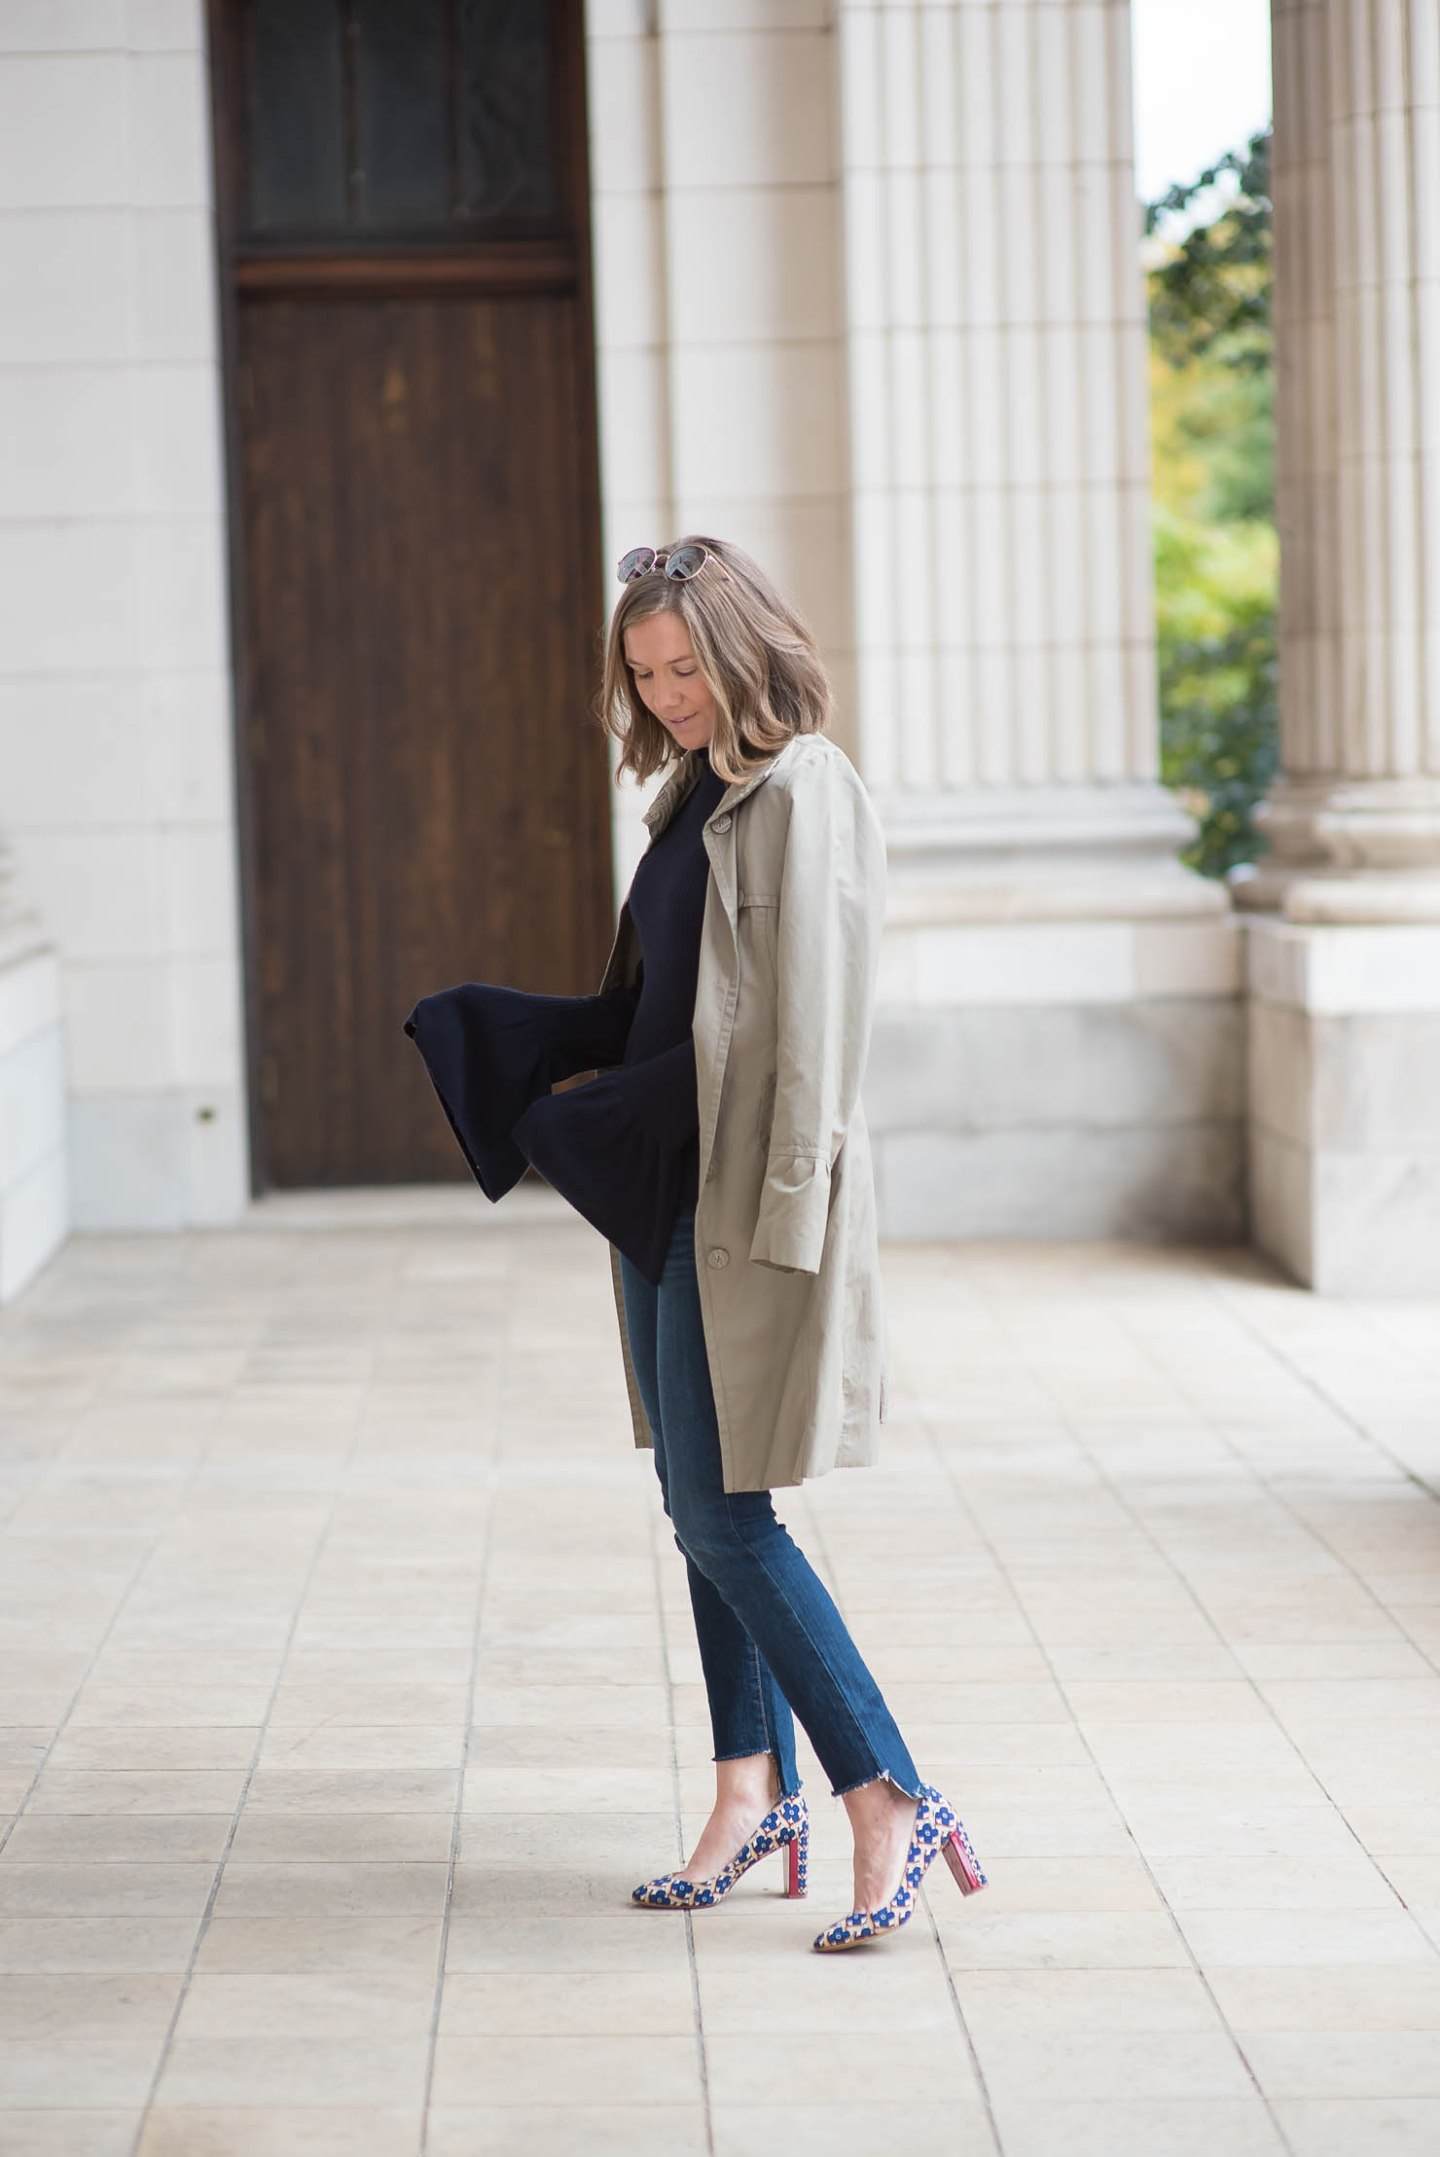 hm-bell-sleeve-sweater-trench-diy-old-navy-step-hem-jeans-printed-pumps-fall-style-fall-layering-fall-fashion-trends-2016